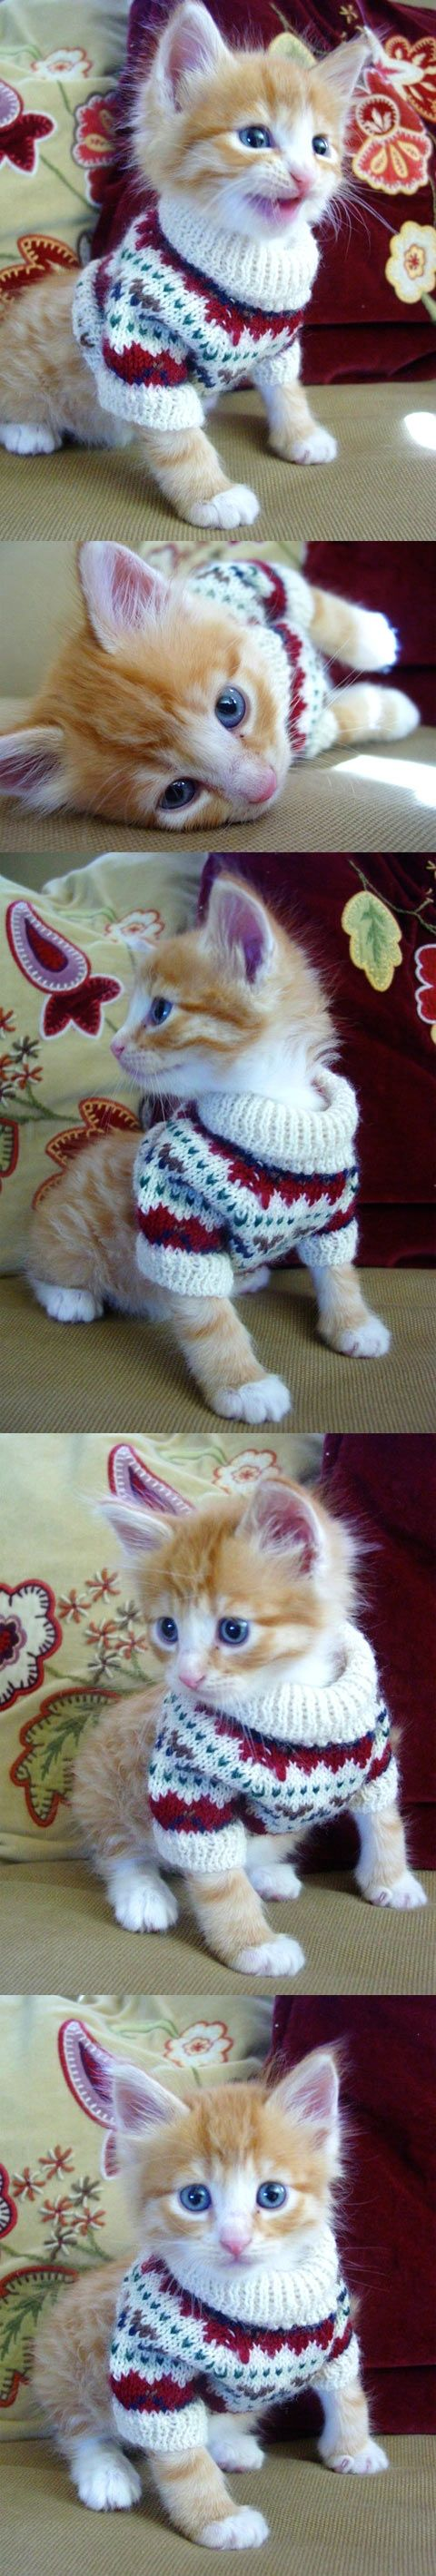 Tiny kitten in a sweater!: